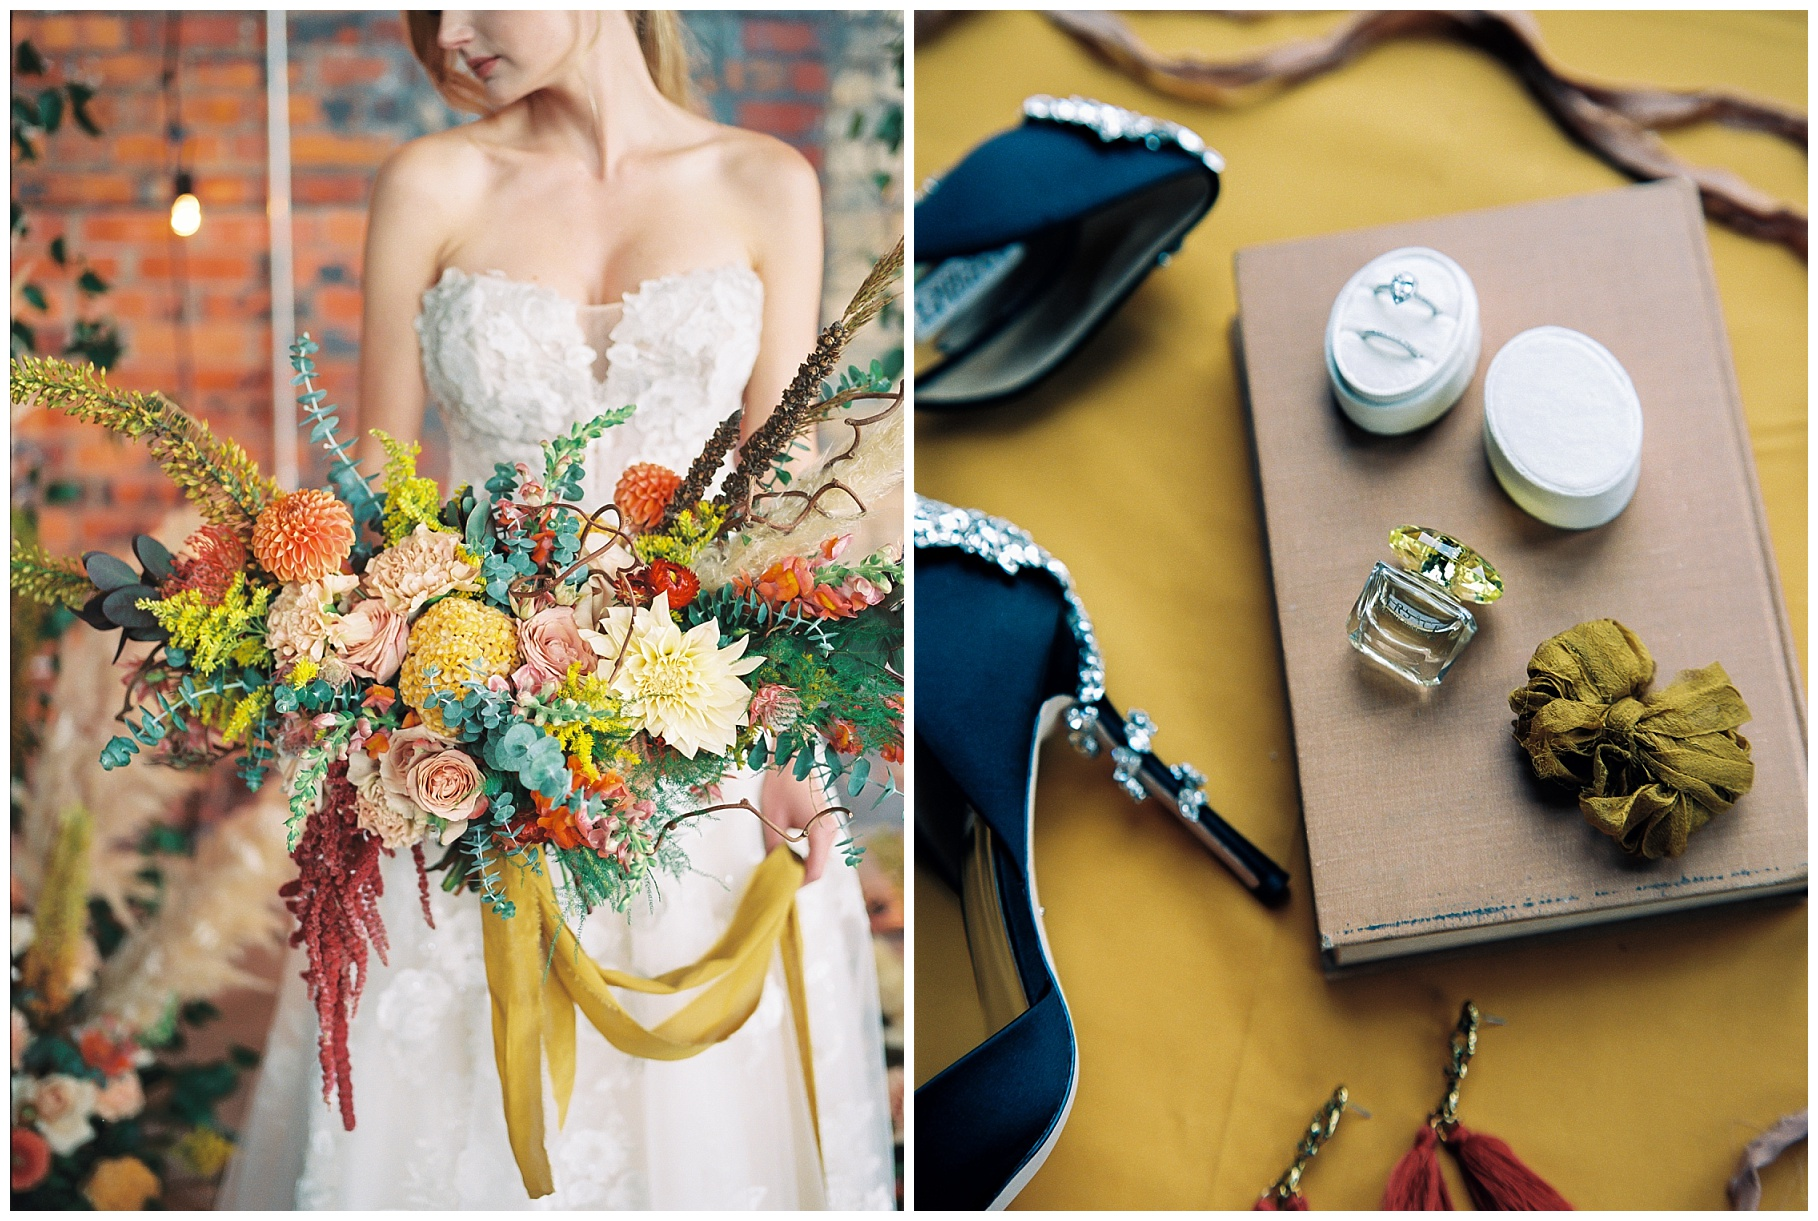 Urban Romance Wedding with Copper Accents at The Millbottom by Kelsi Kliethermes Photography Best Columbia Missouri Wedding Photographer_0019.jpg